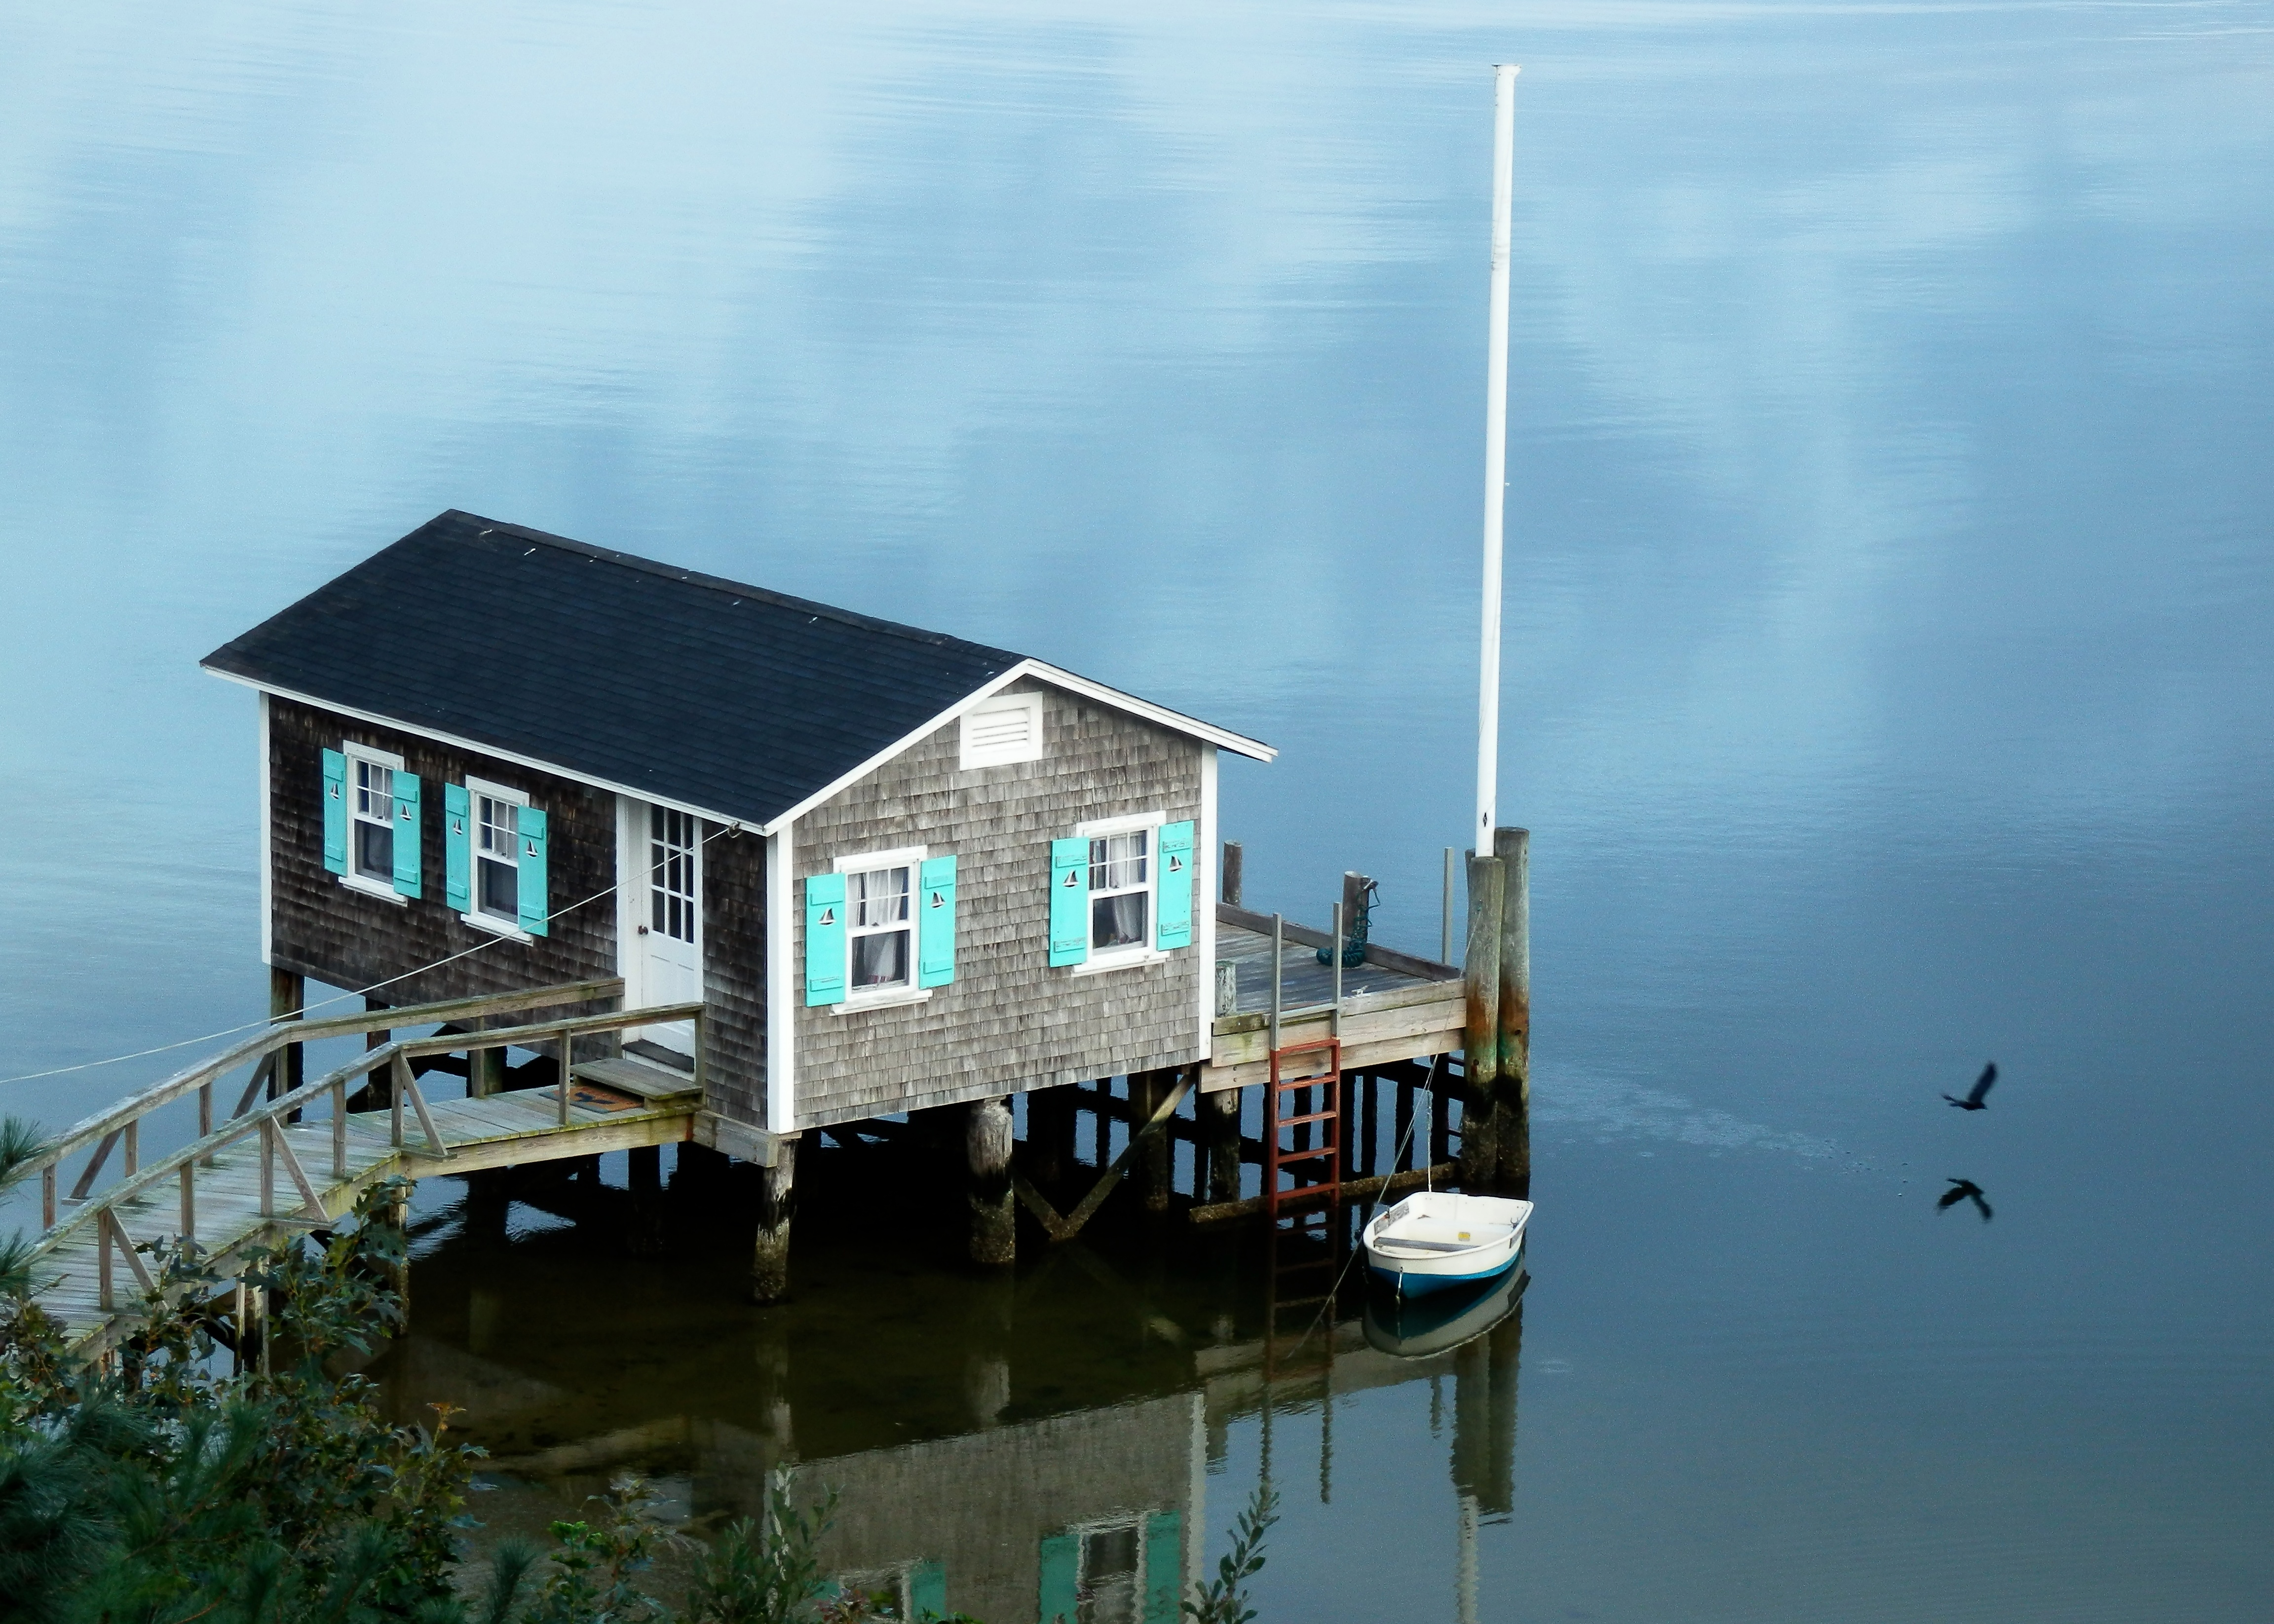 the boat house with bird author lucke charlie